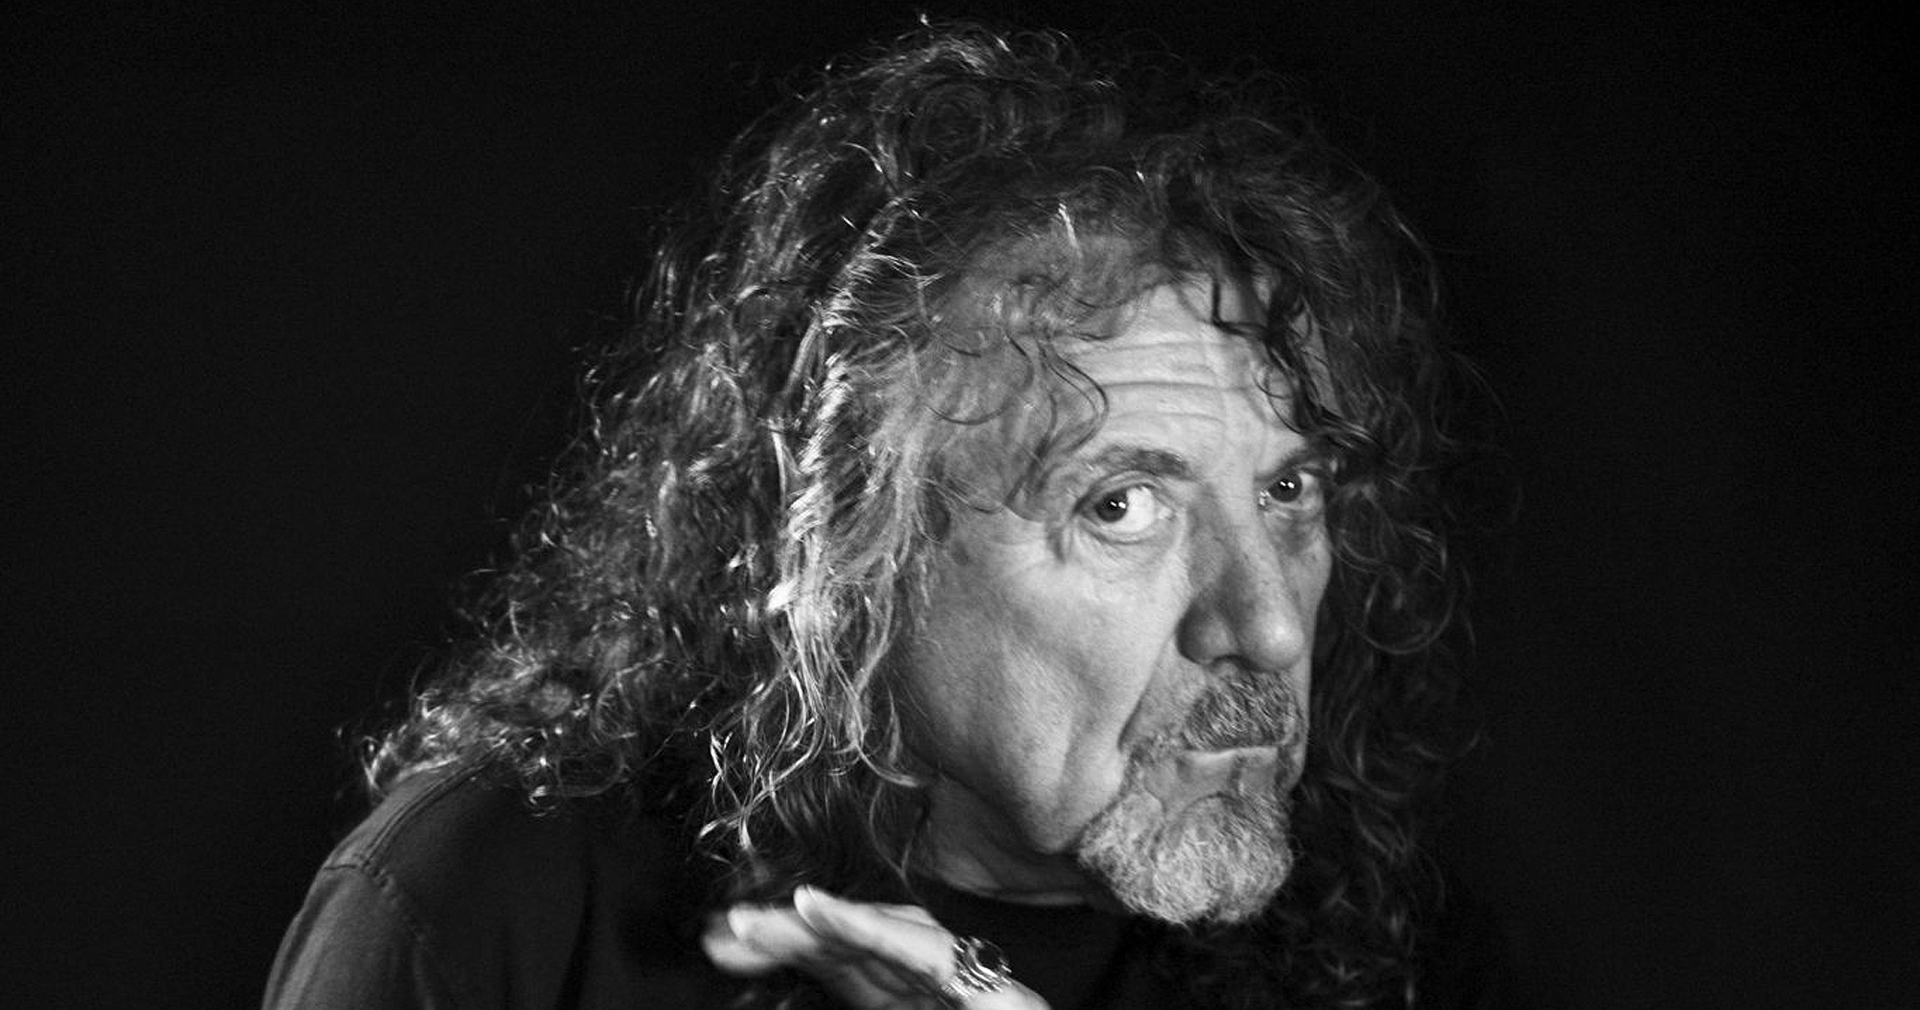 robert plant dreamland